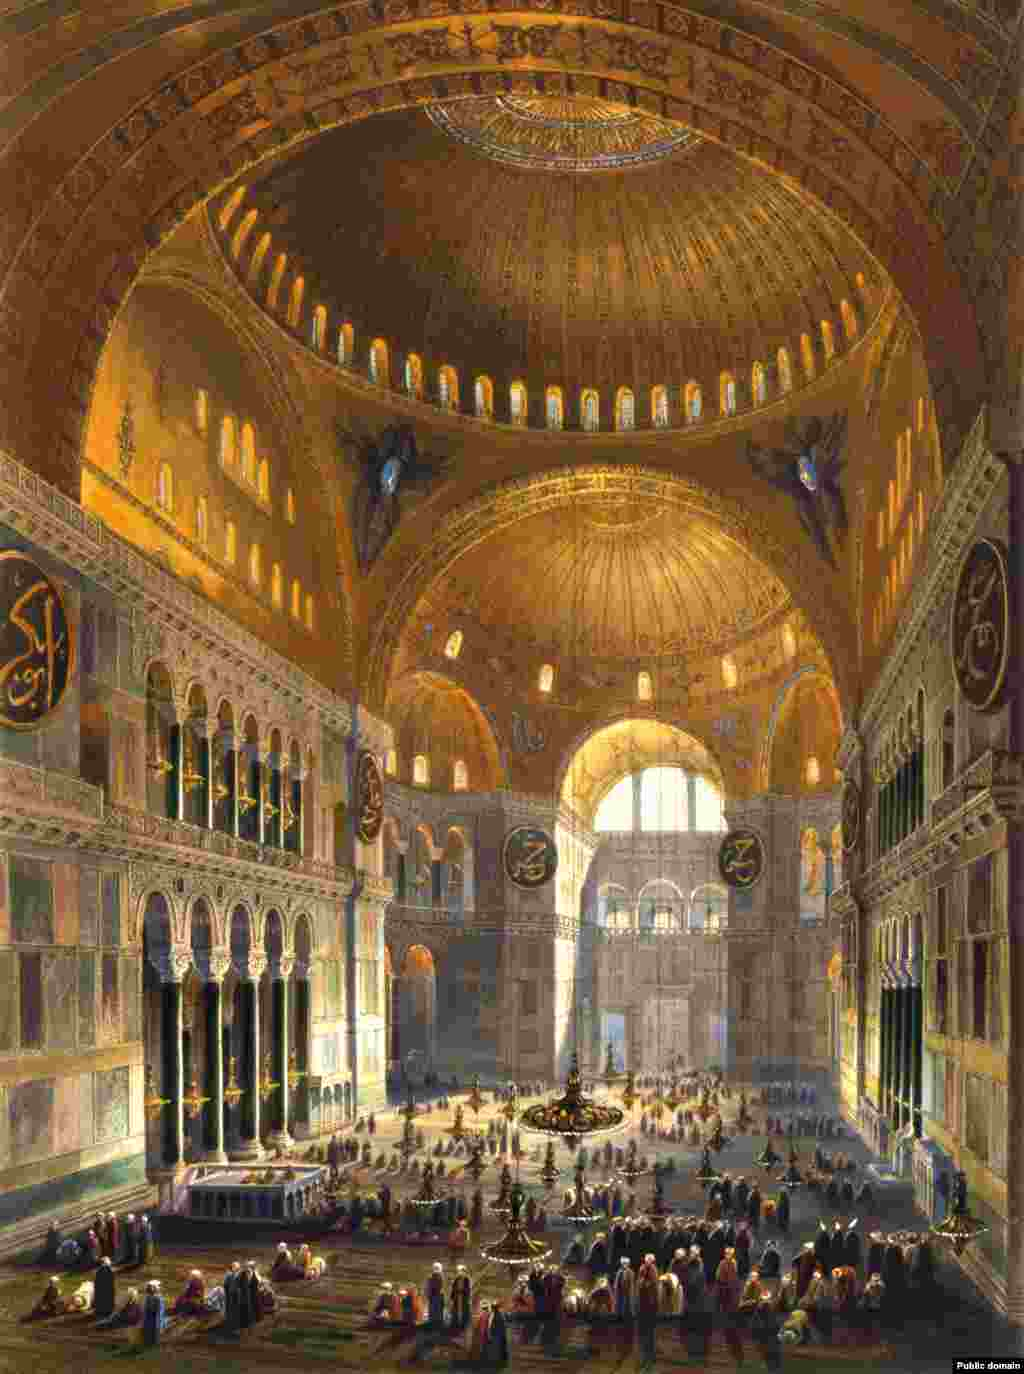 An 1852 illustration of Muslims praying inside Hagia Sophia when it was a mosque.   For nearly 500 years, Hagia Sophia was a working Mosque, and Christian iconography inside was plastered over or destroyed.